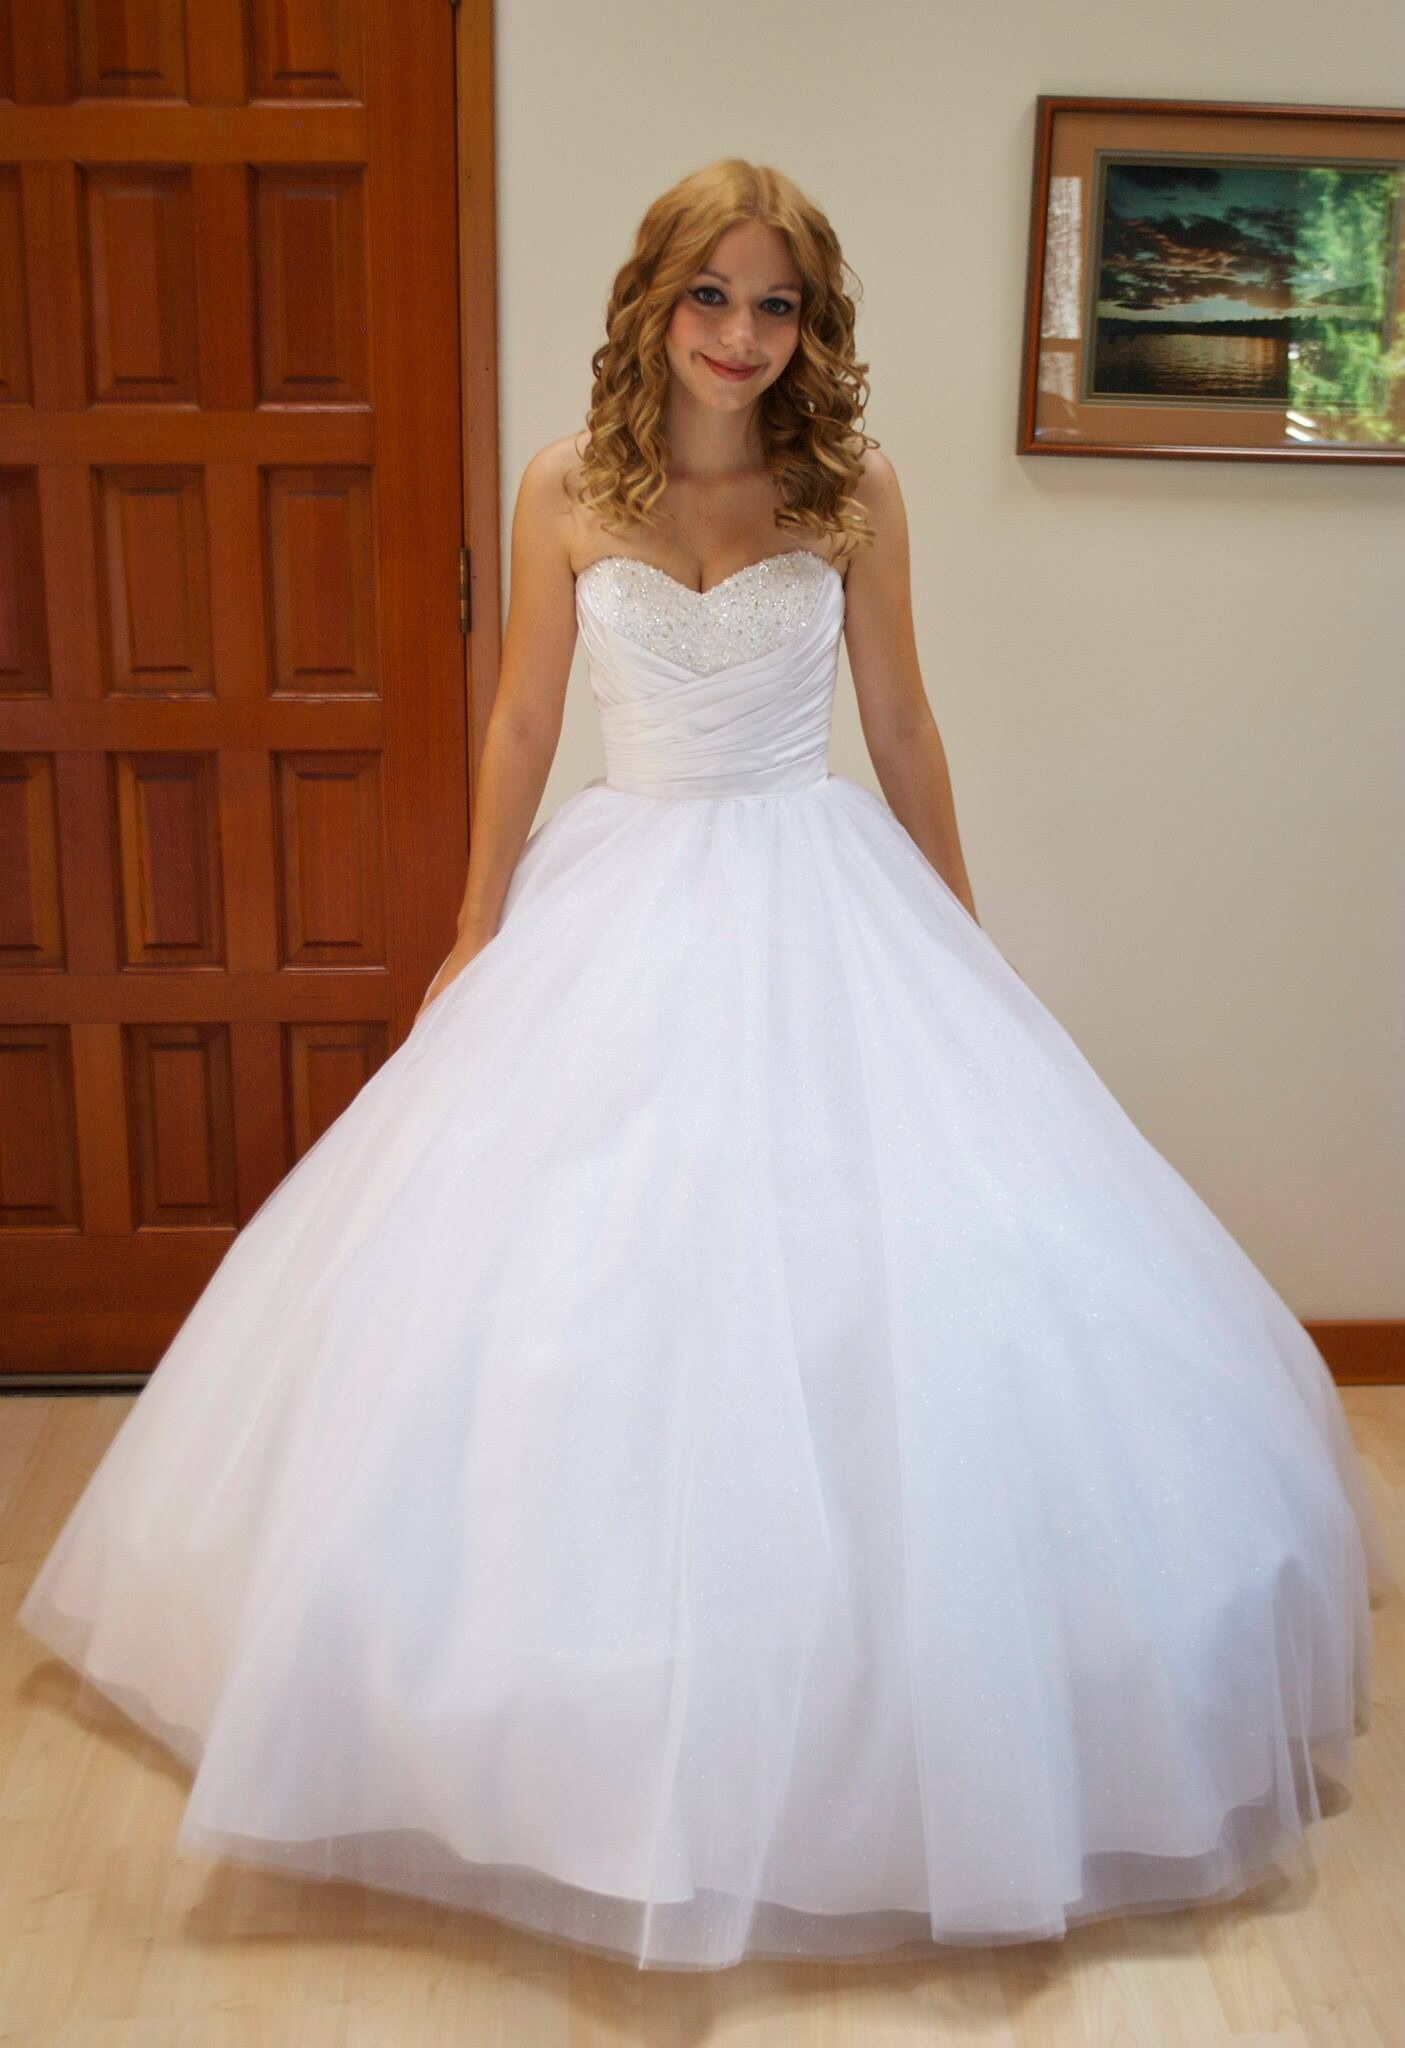 Cinderella wedding dress alfred angelo  Share your Alfred Angelo Disney dresses  Weddingbee  Page